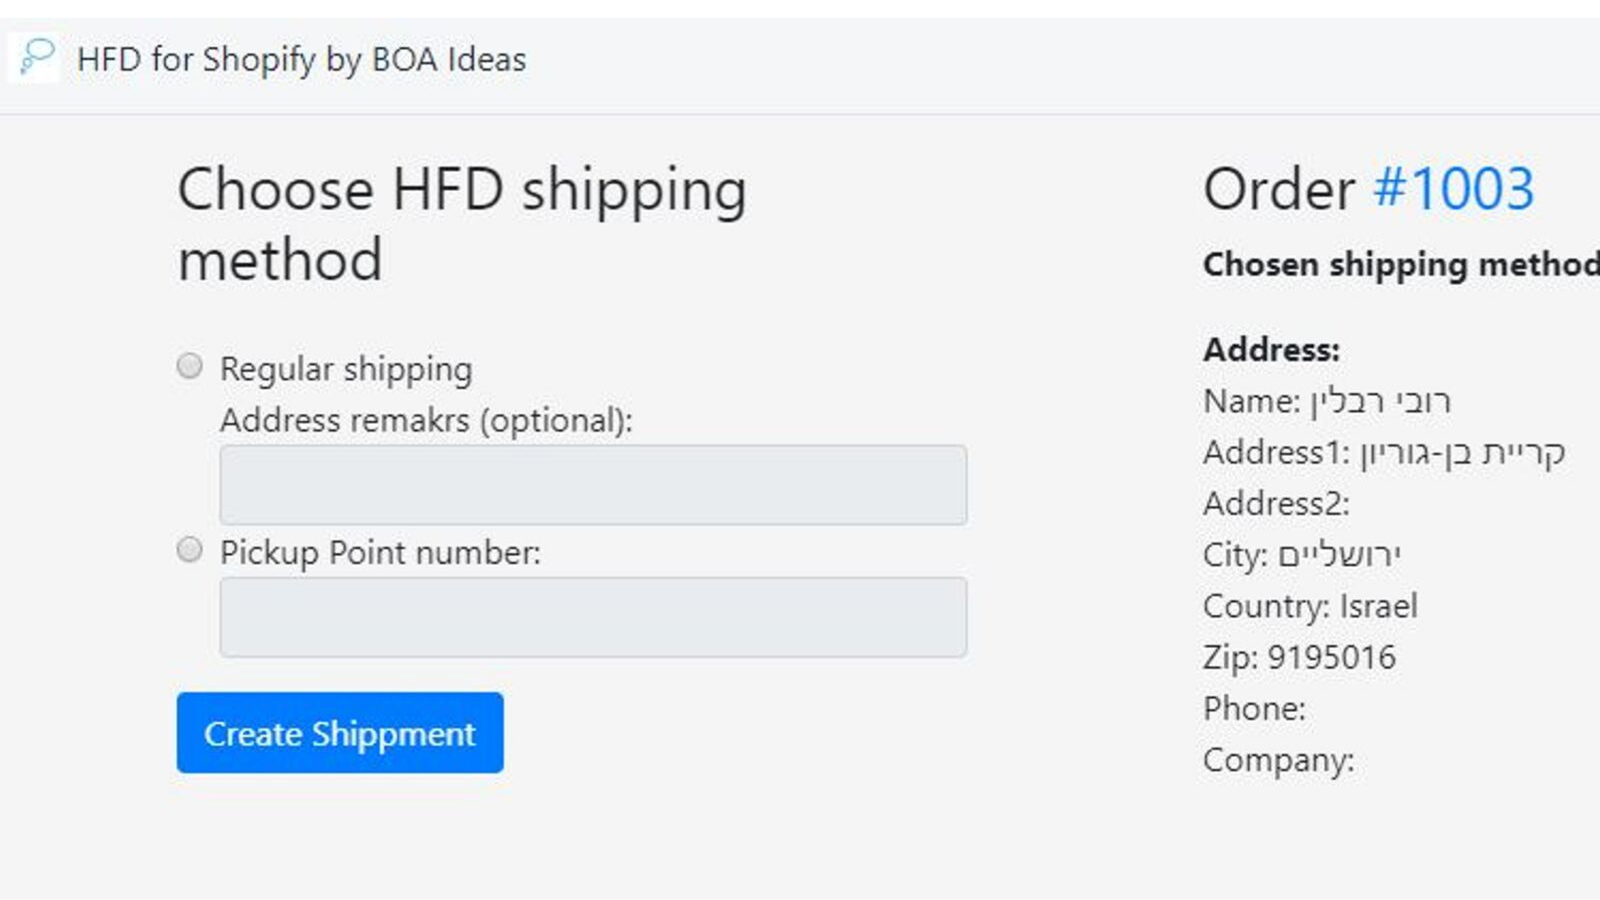 Select between regular shipping to pickup point